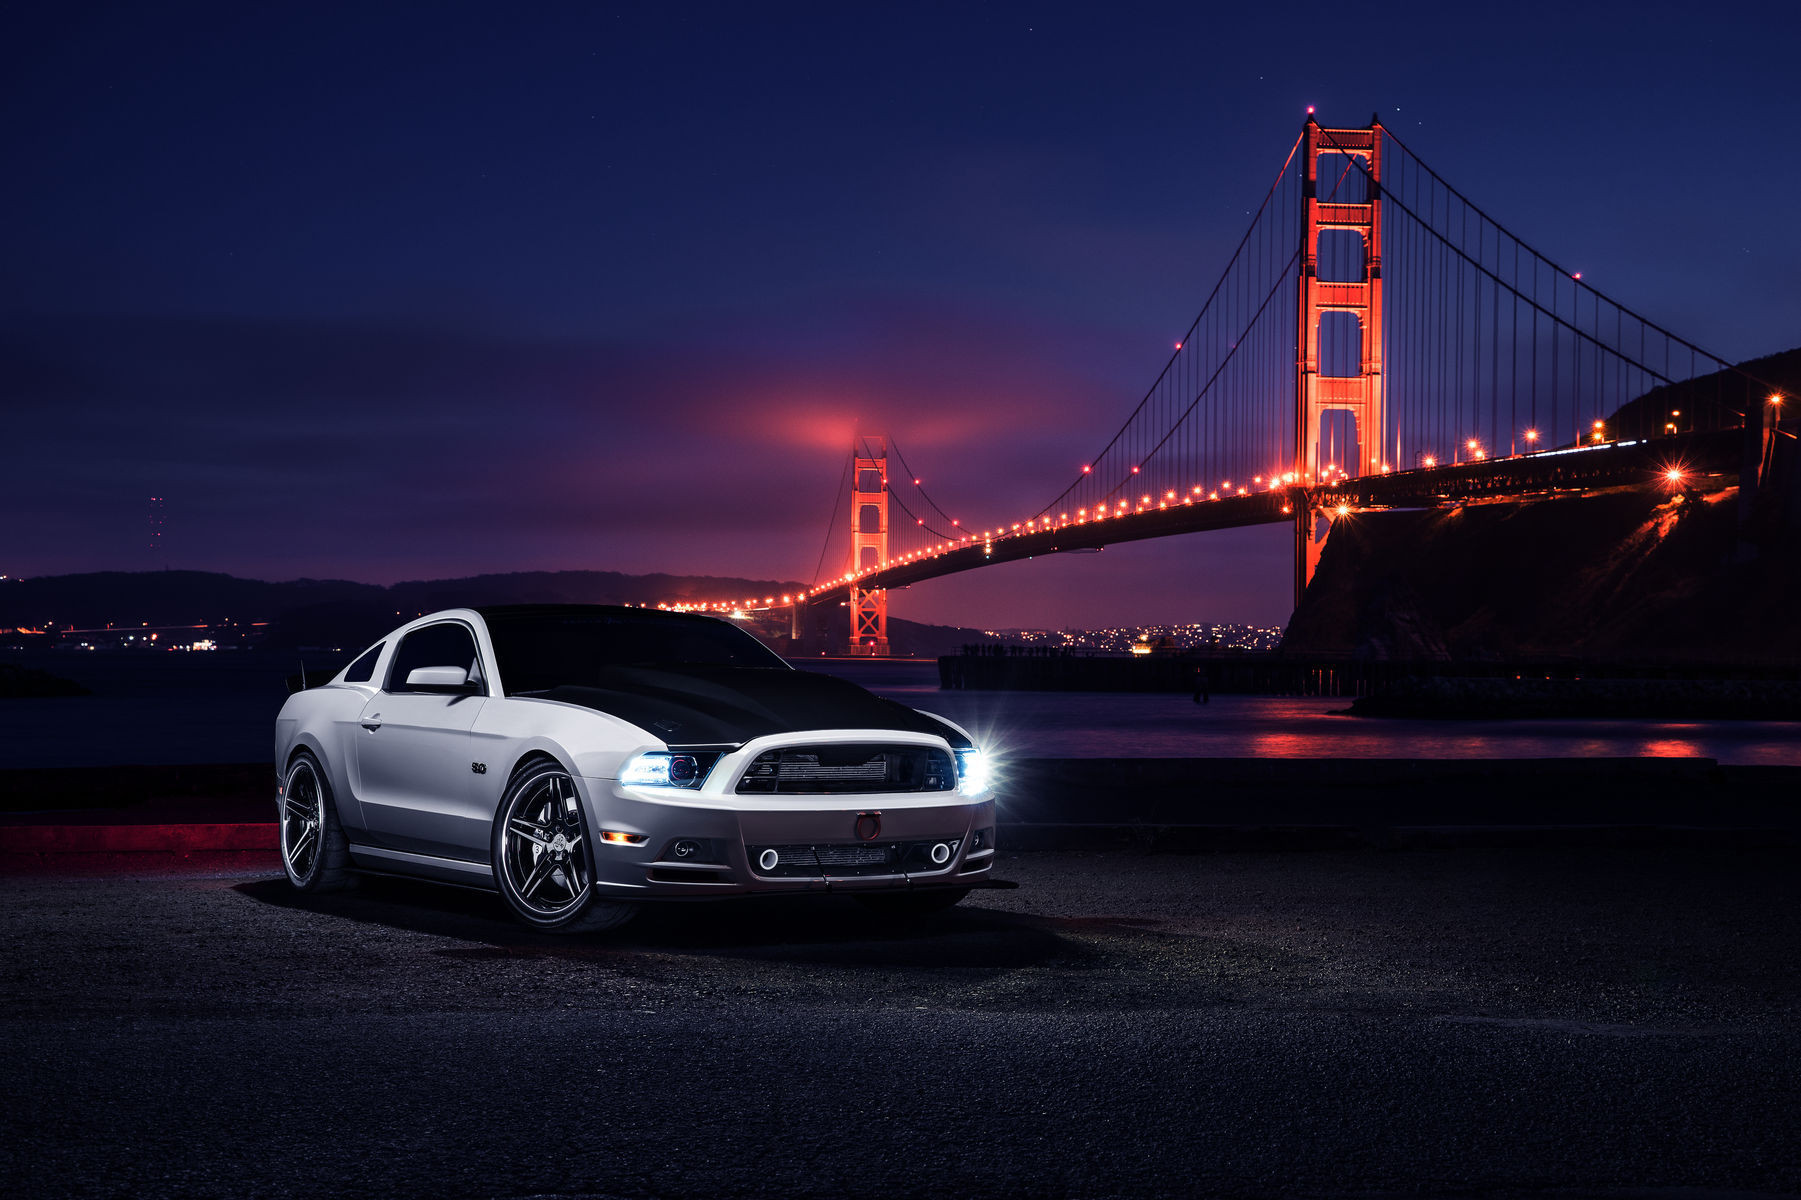 Ford Mustang | Ford Mustang Luxury 5 Split Concave